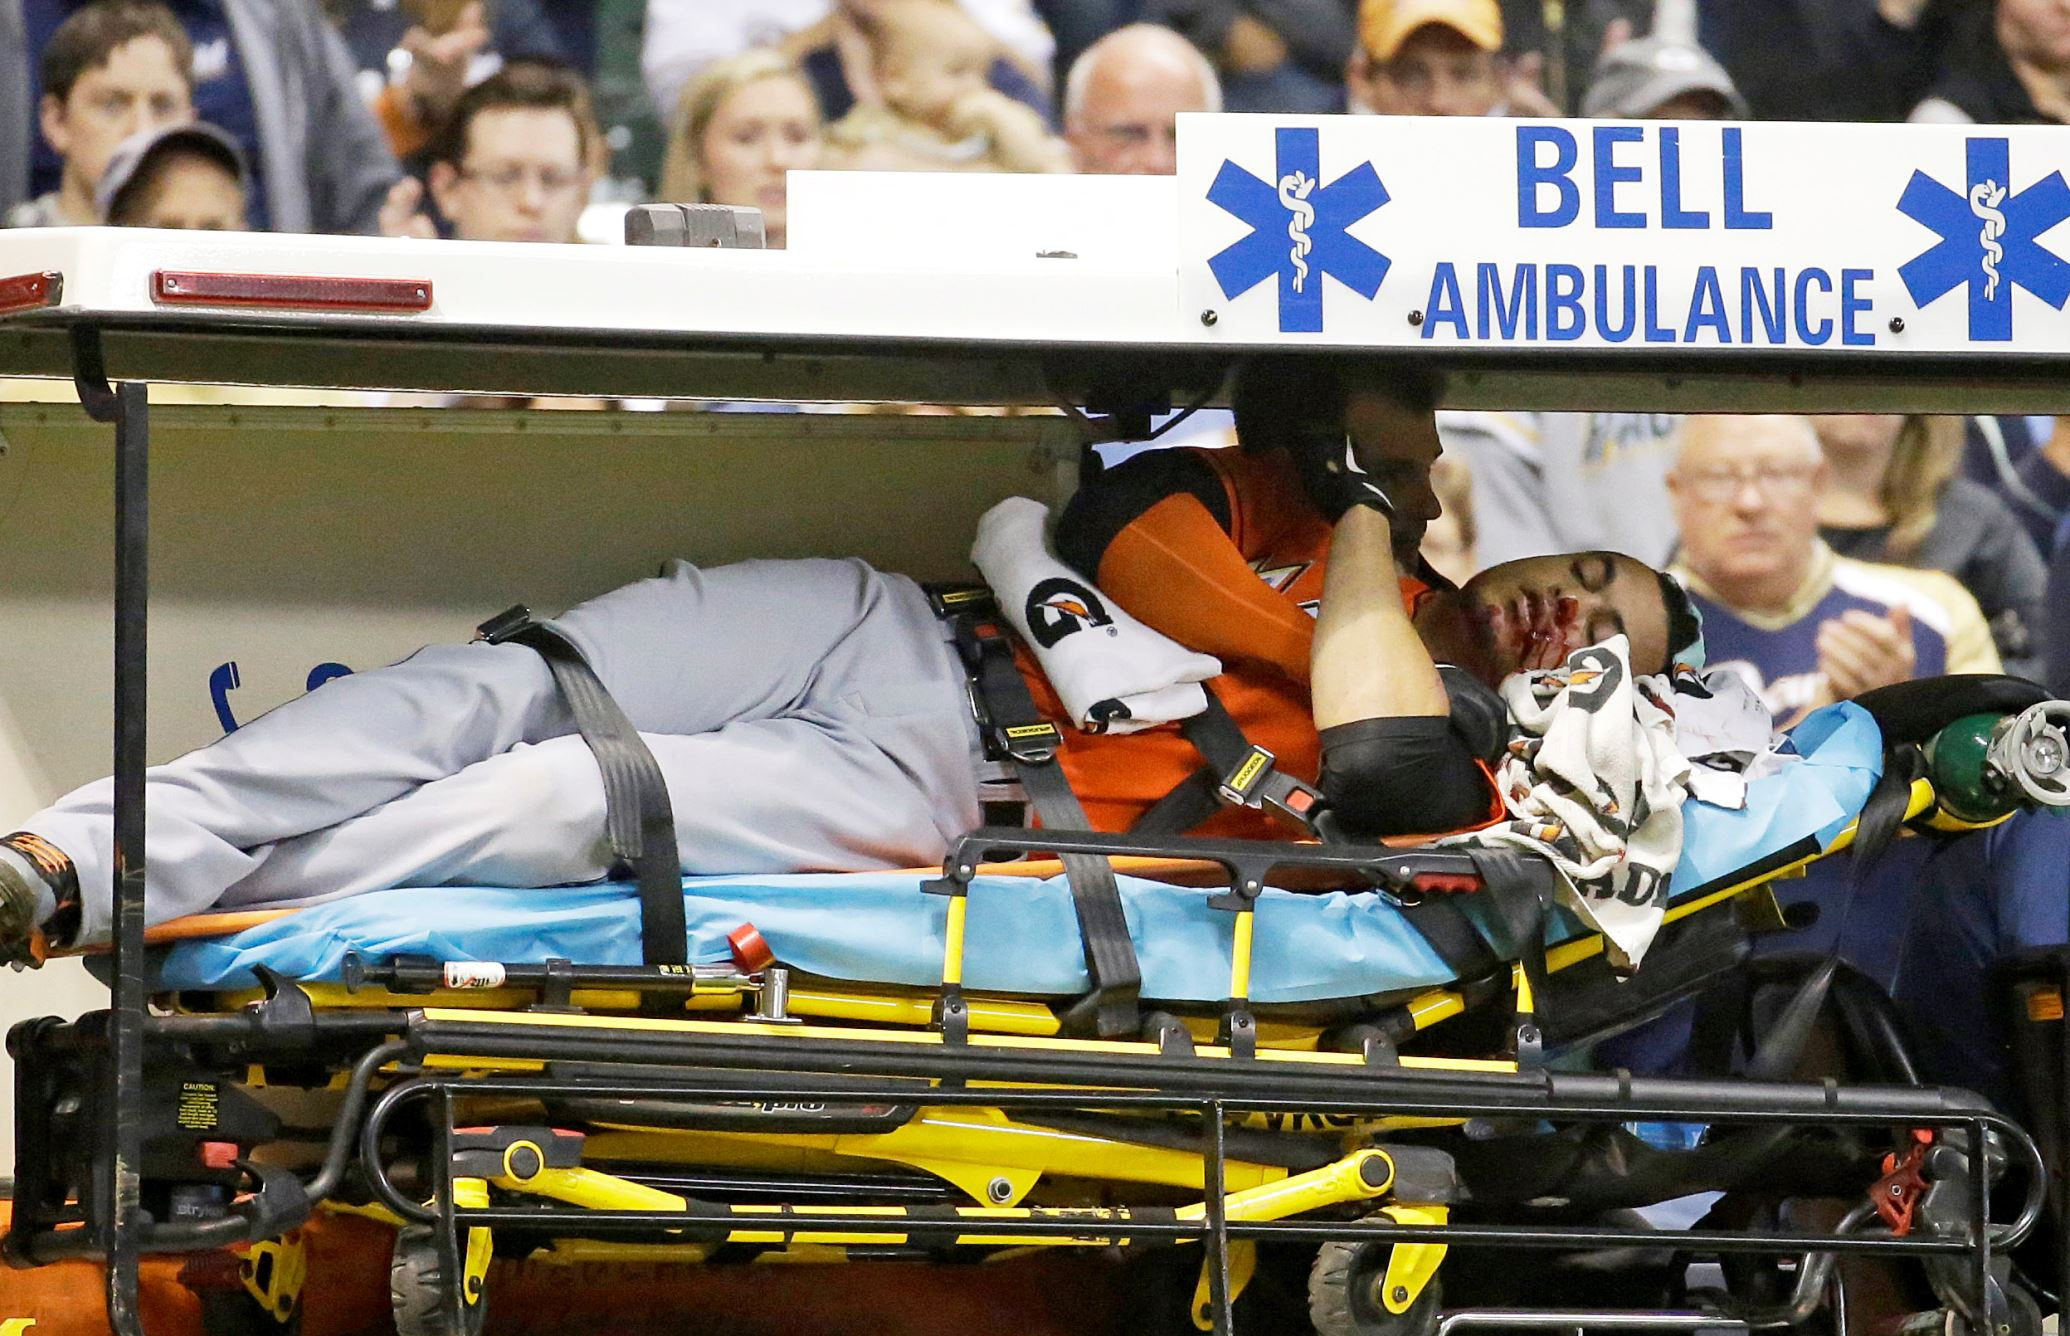 Miami Marlins' Giancarlo Stanton is taken off the field on a stretcher after being hit in the face with a pitch during the fifth inning against the Milwaukee Brewers Sept. 11 in Milwaukee.